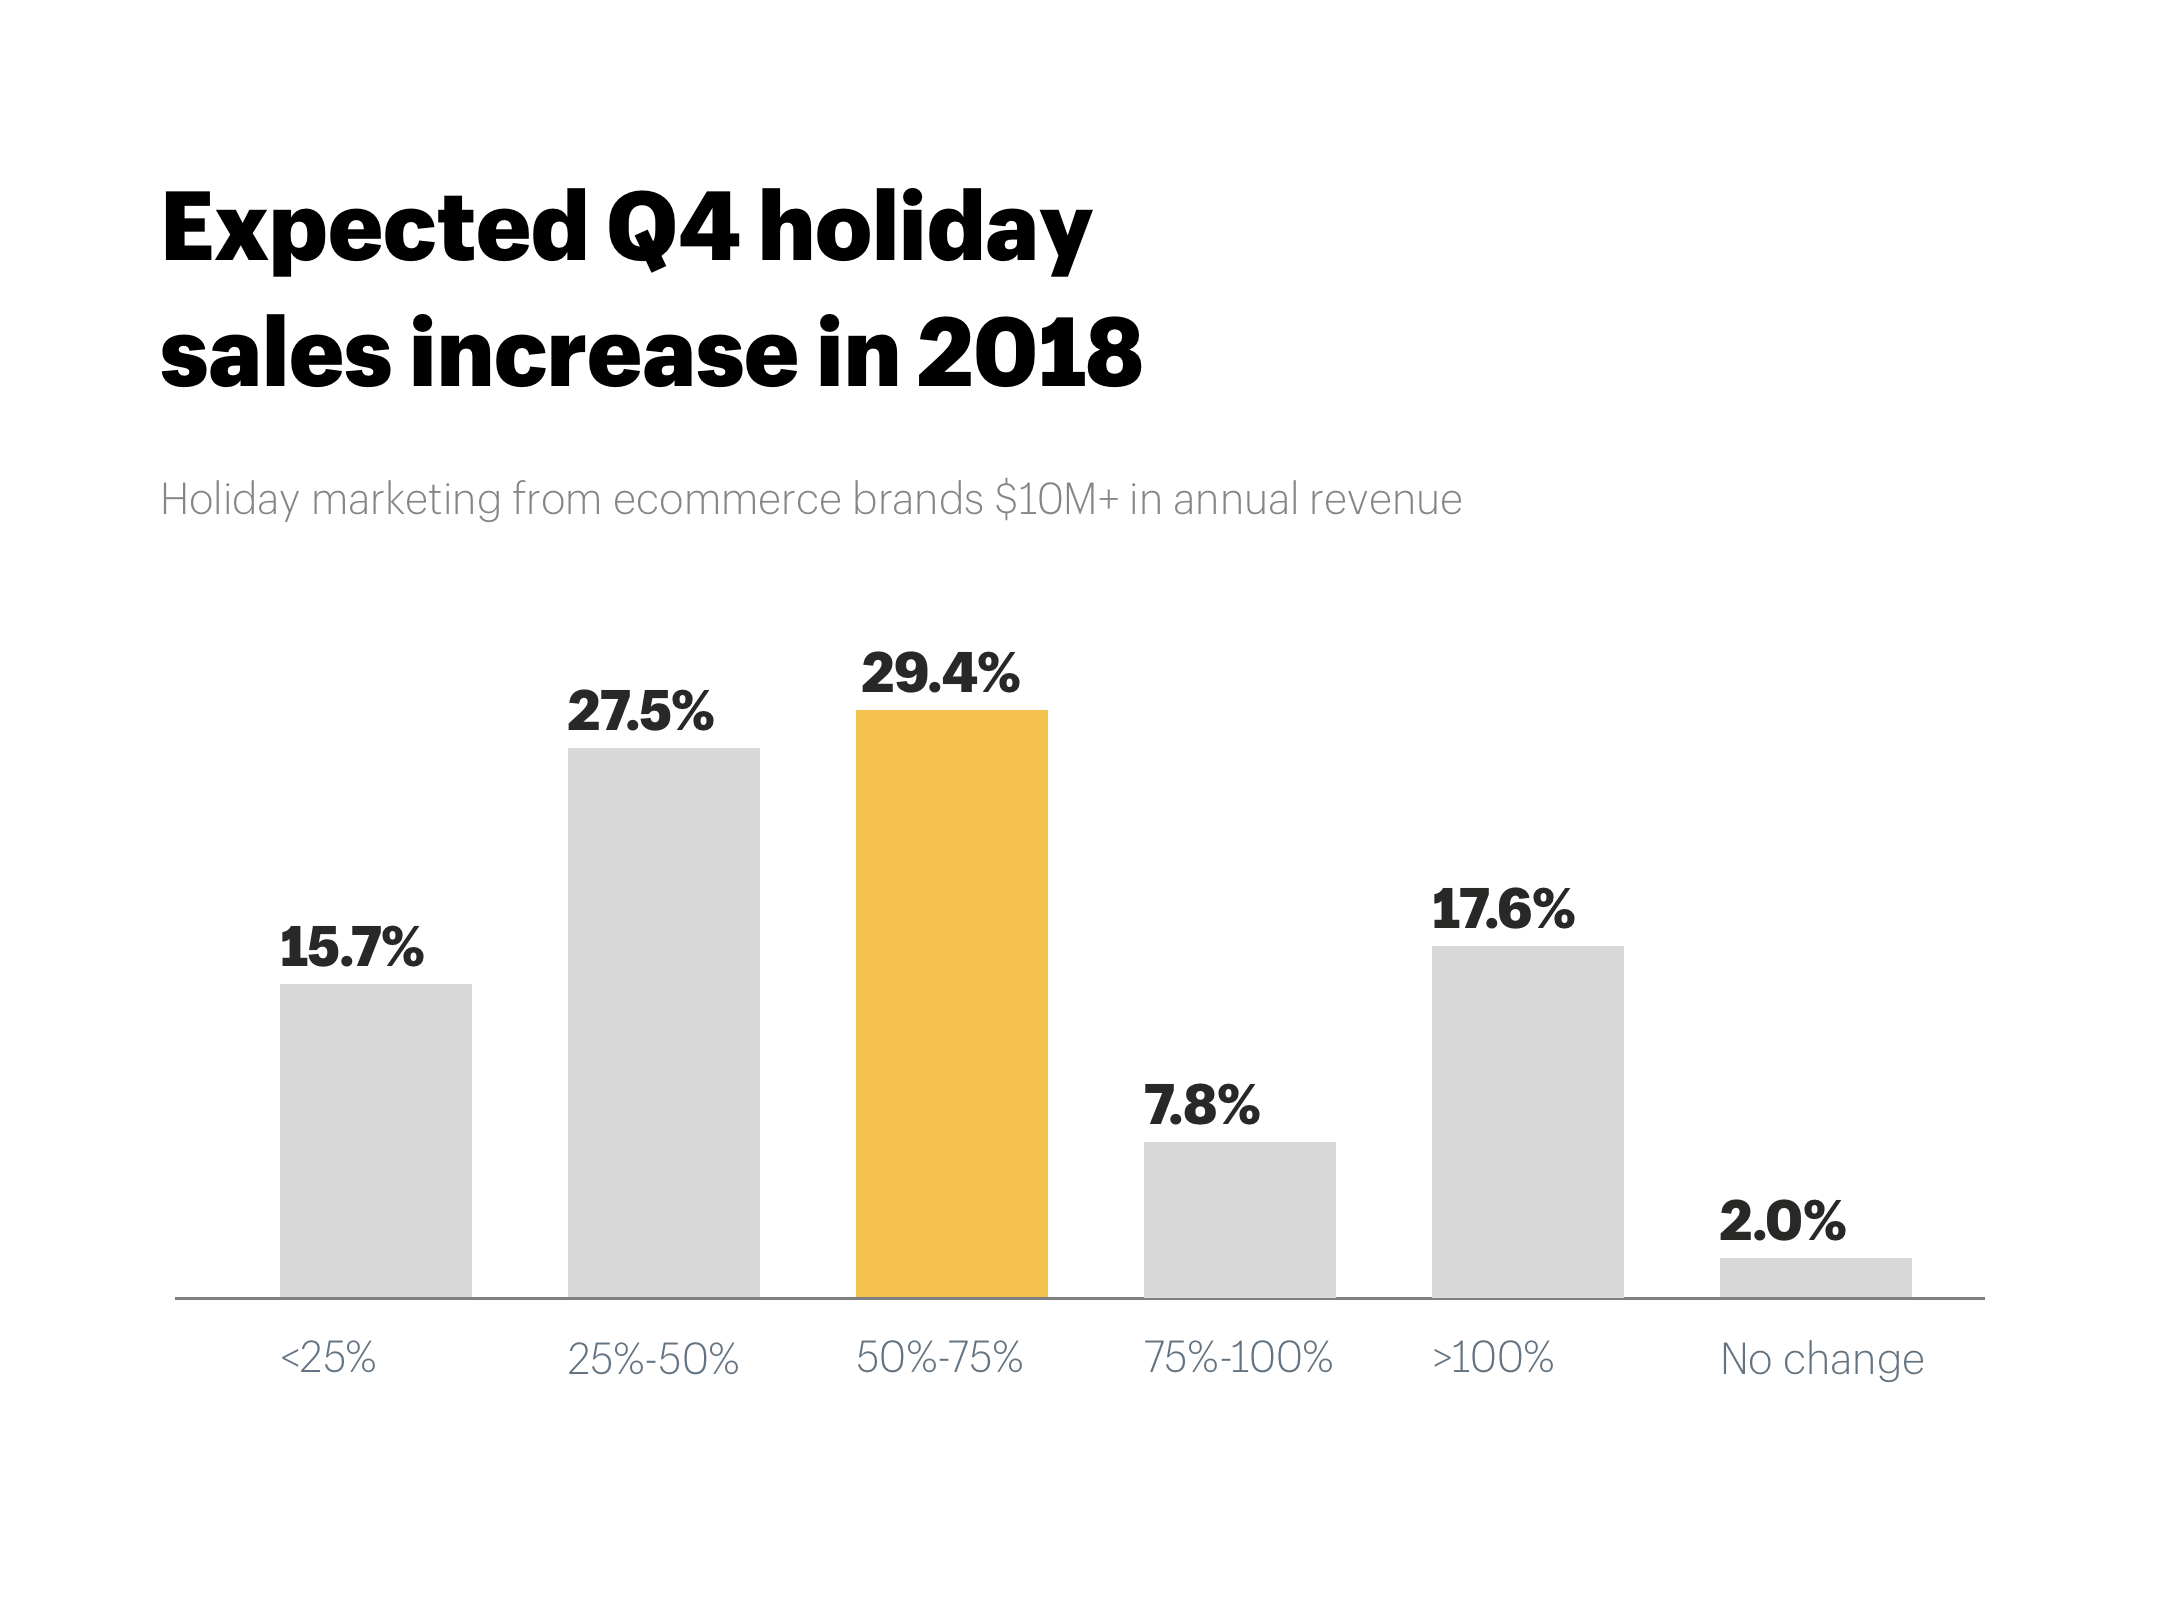 Ecommerce expected Q4 holiday sales increase in 2018